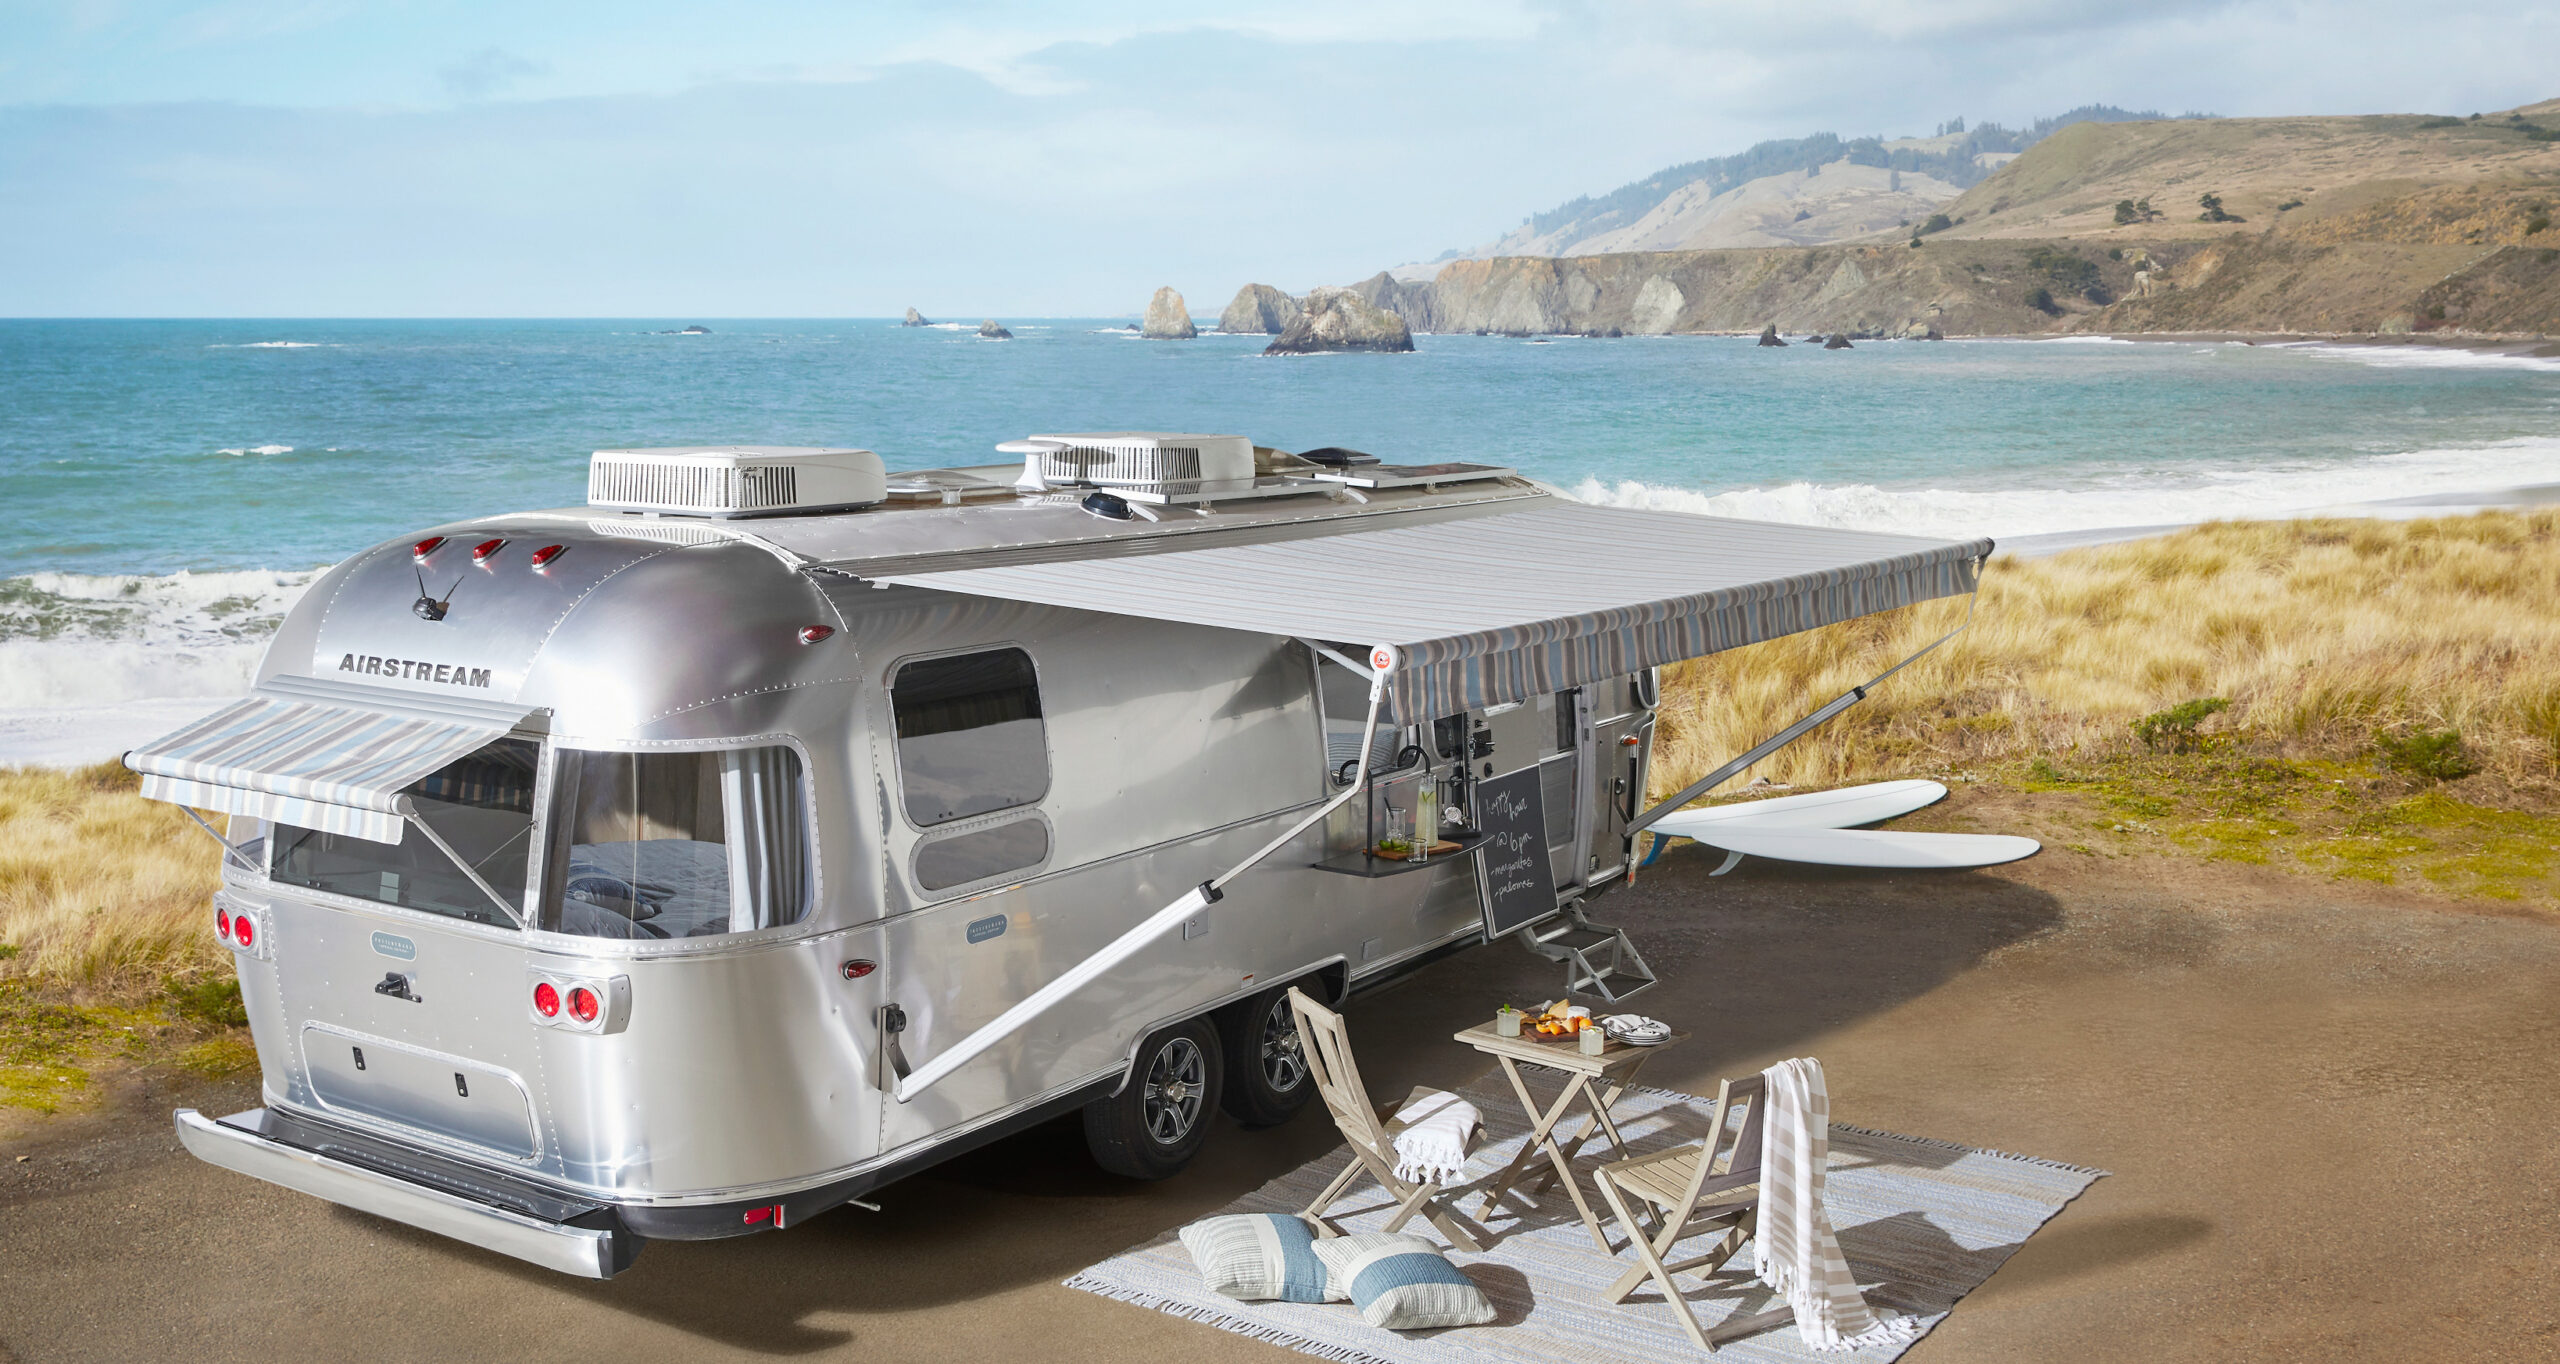 Exterior view of the Airstream x Pottery Barn Travel Trailer